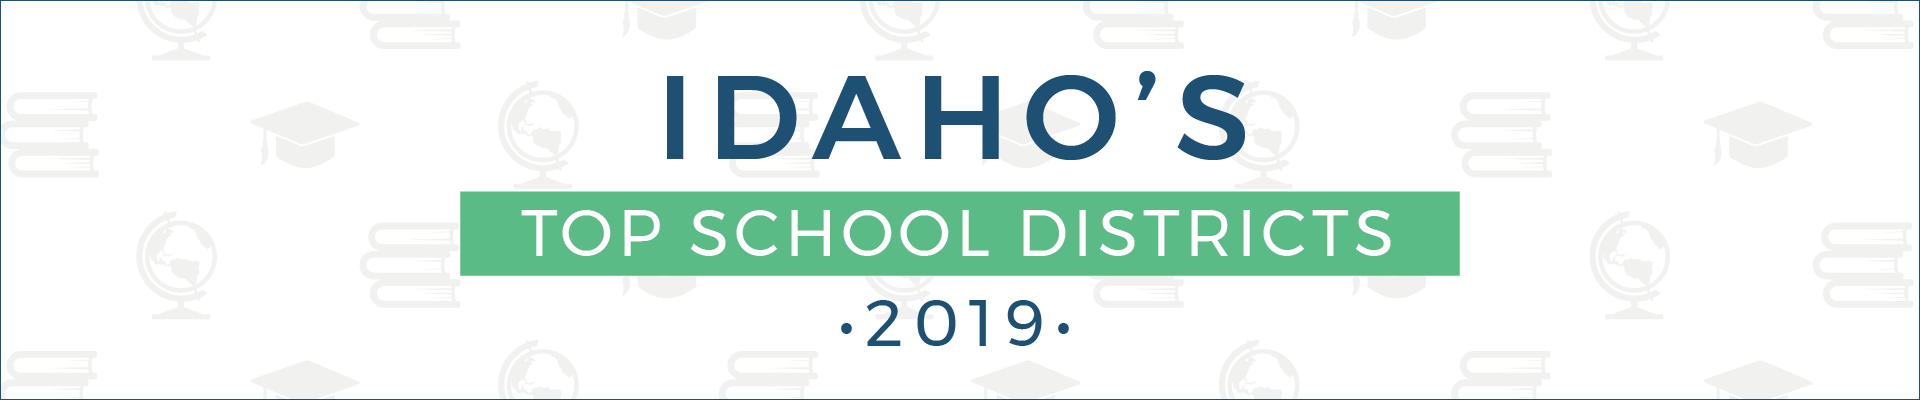 top school districts, 2019 - idaho - banner